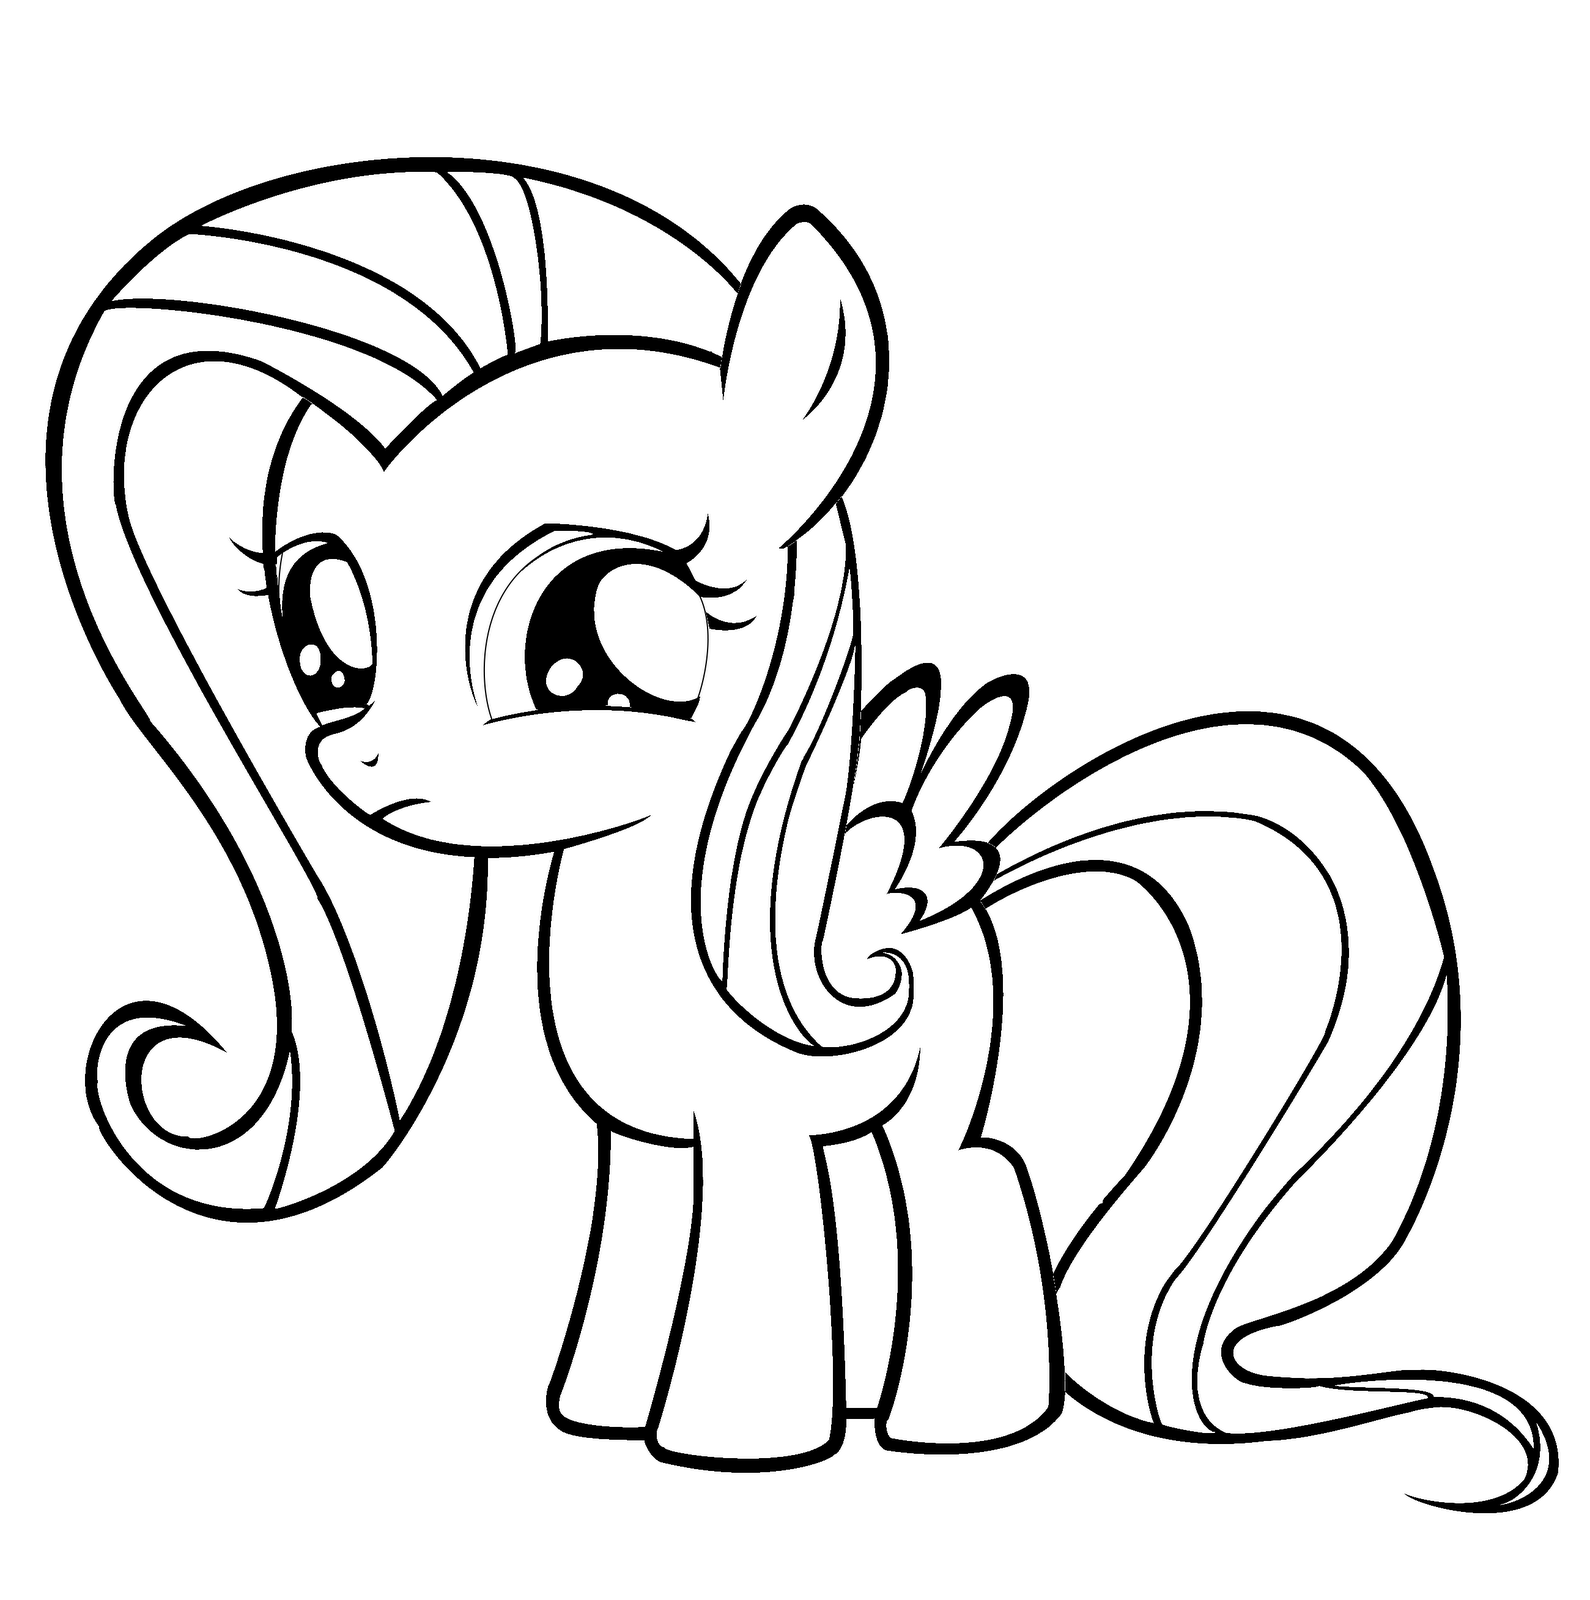 my little pony colouring pages to print malvorlagen filly pferde to print little my colouring pony pages